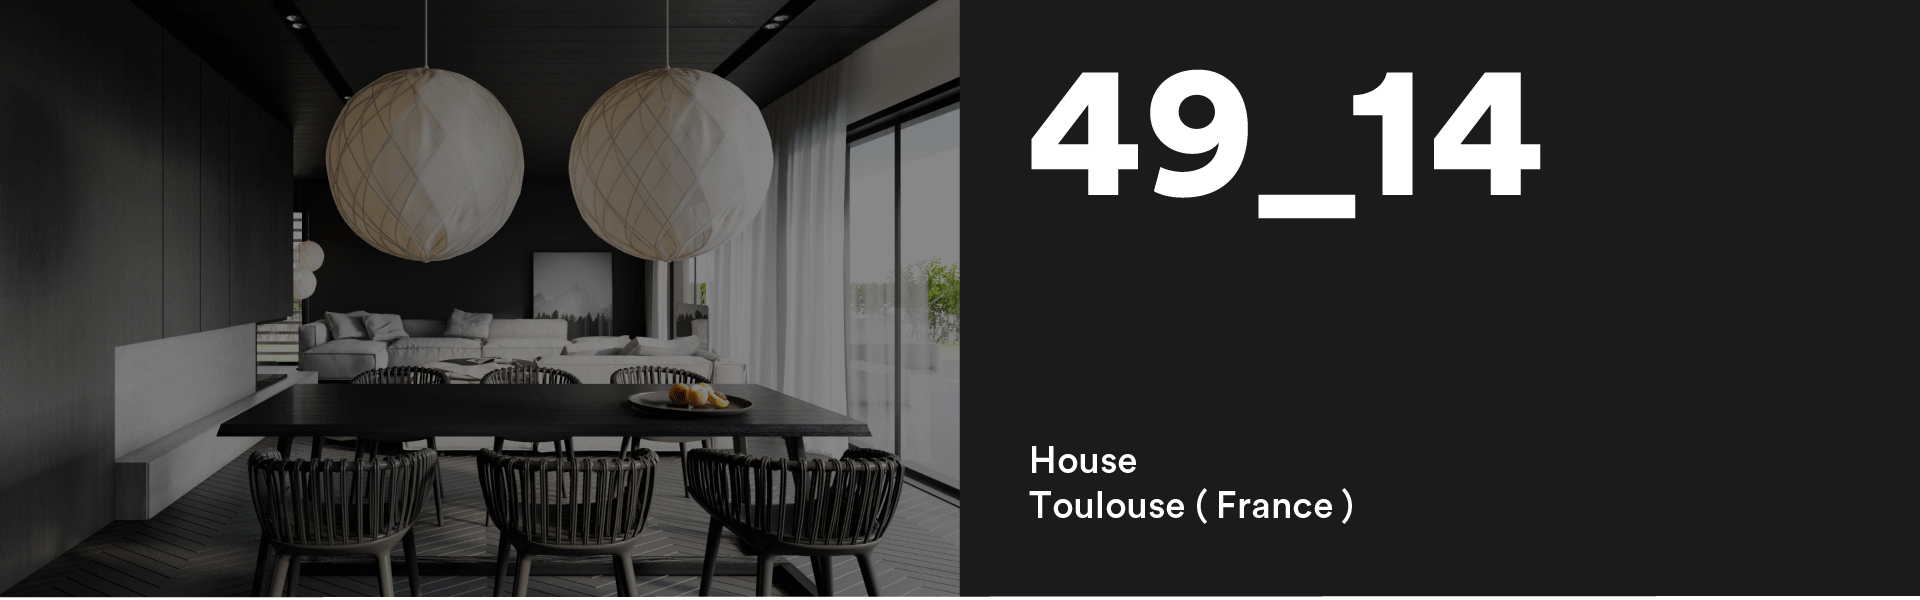 49_14 House Toulouse